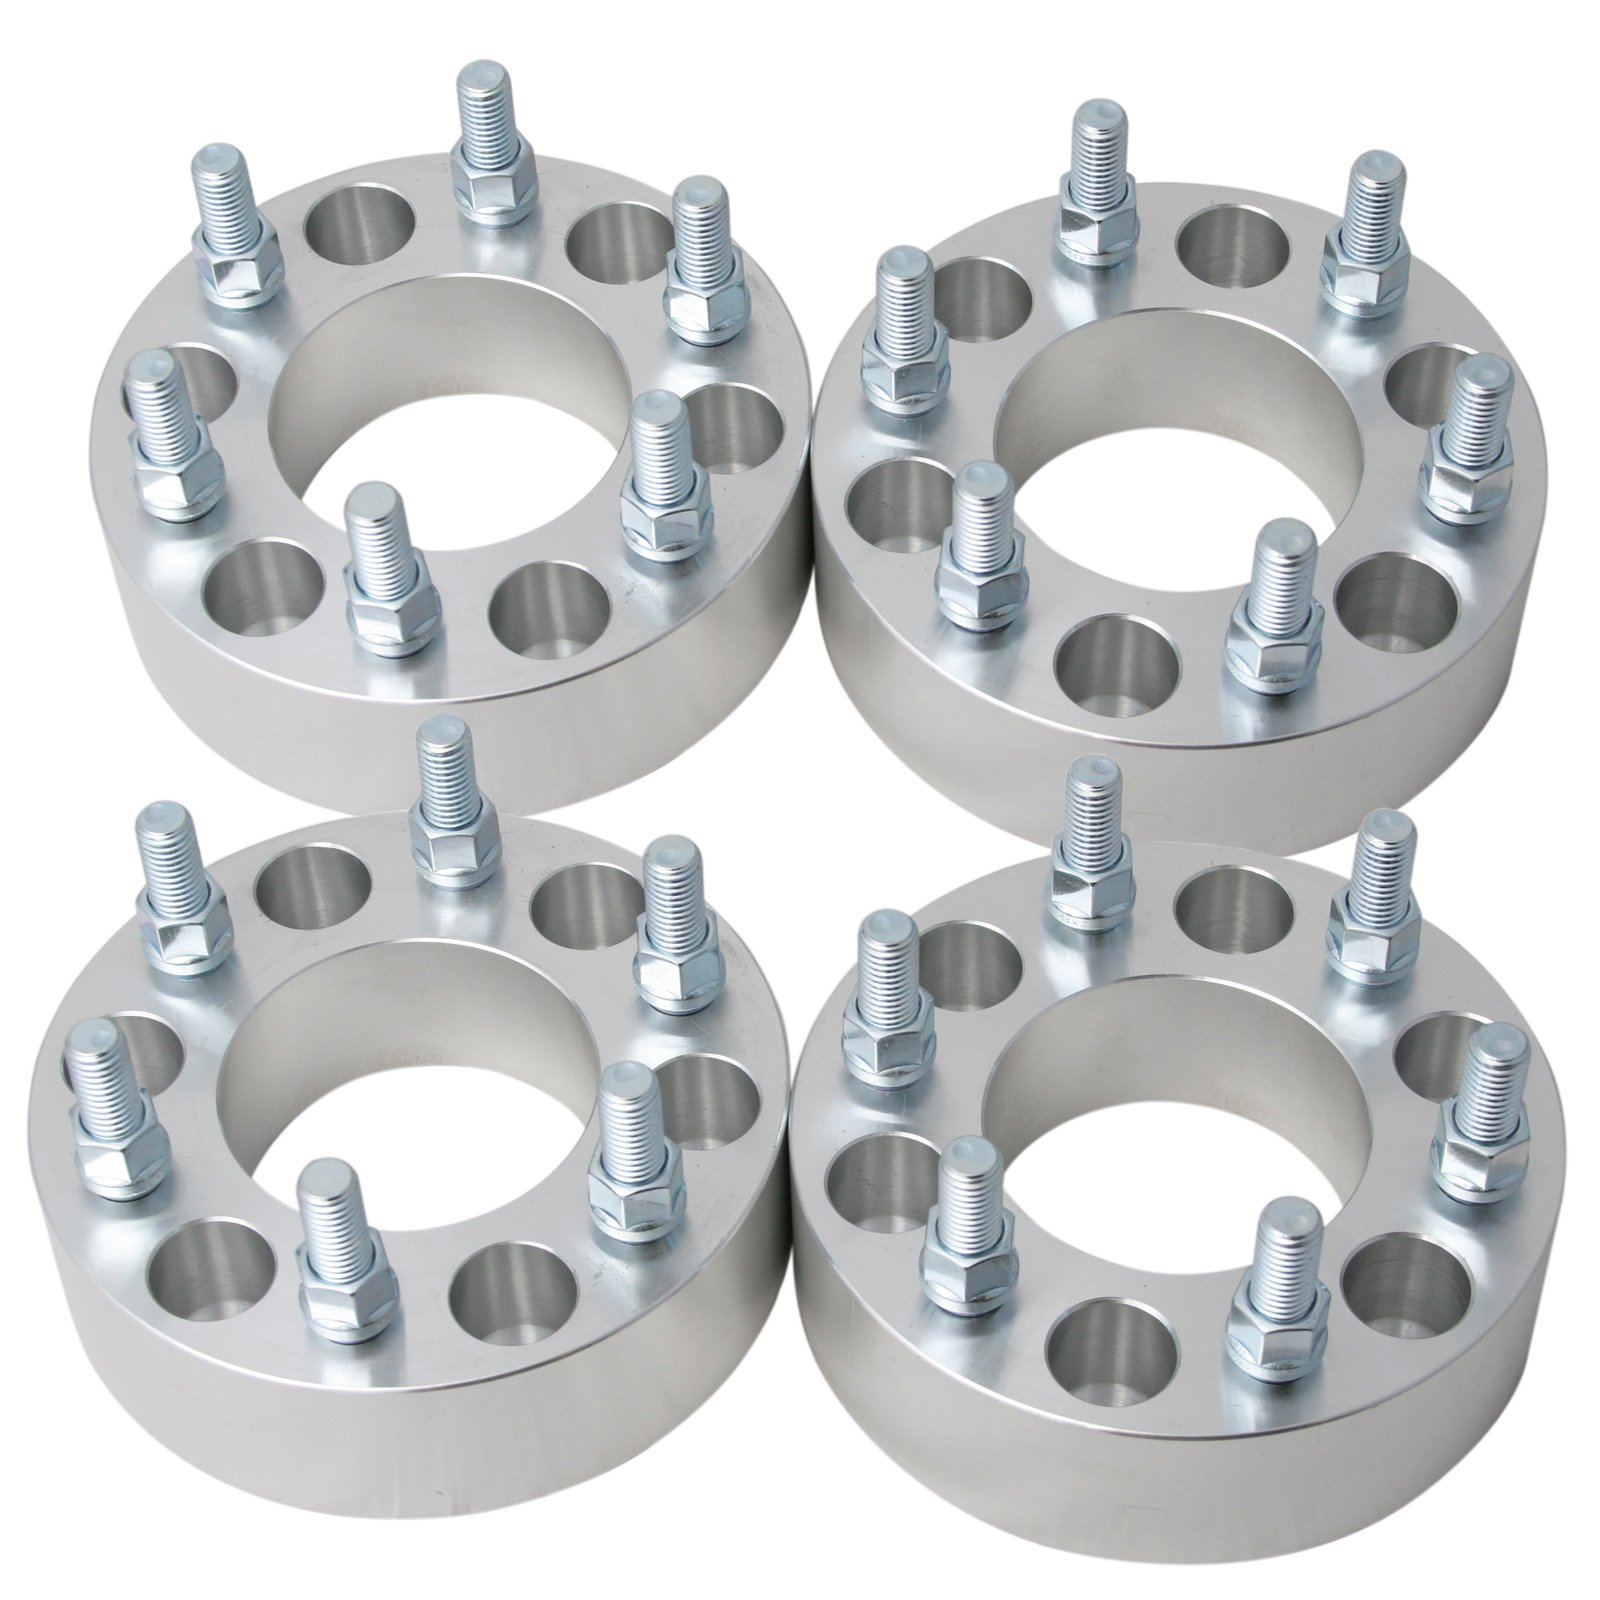 4pc 1.5'' Thick Wheel Spacers Adapters 6x135 to 6x5.5'' (CHANGES BOLT PATTERN) with 14x2 Coarse Studs for Ford Expedition F150 Lincoln Navigator (6x135 to 6x139.7) 38mm